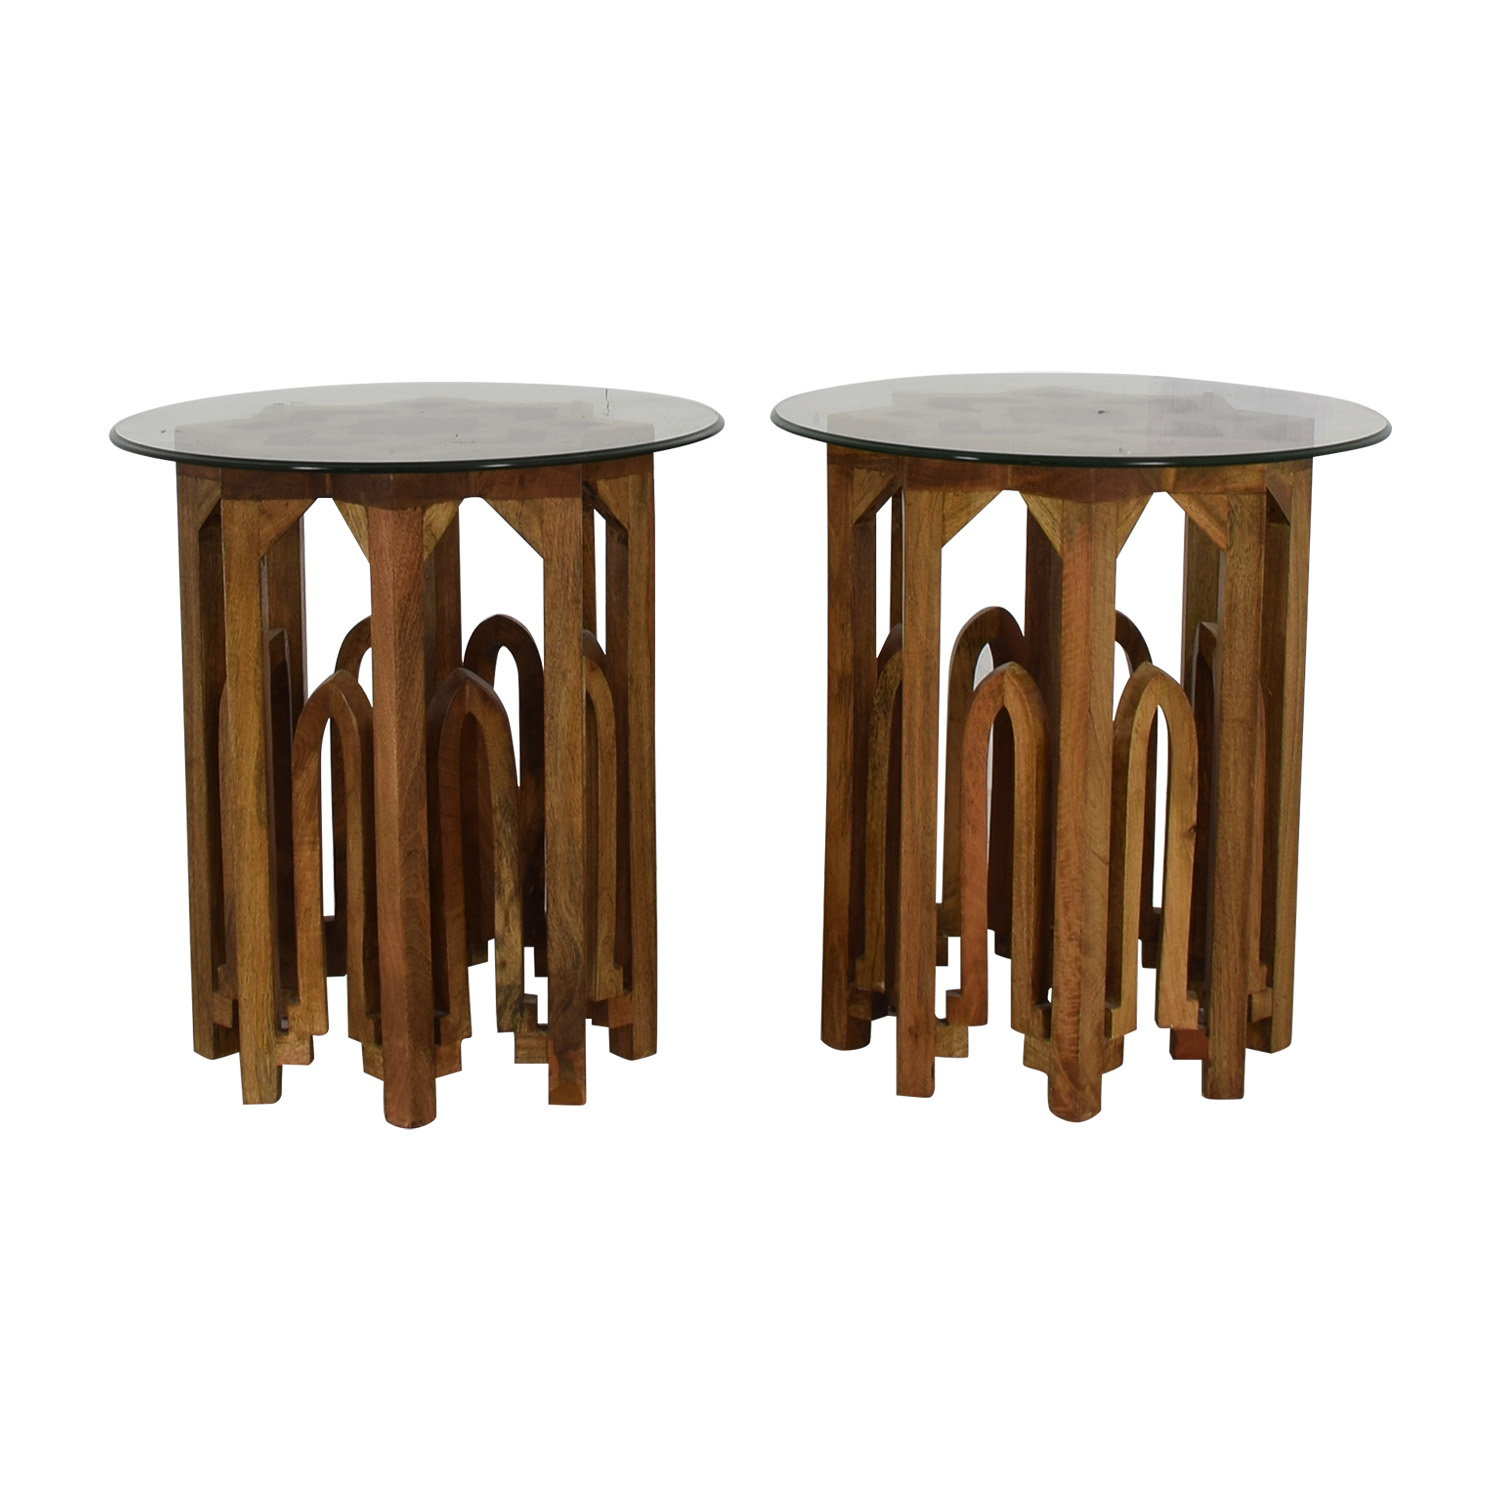 Round Glass Top Wood Base End Tables for sale